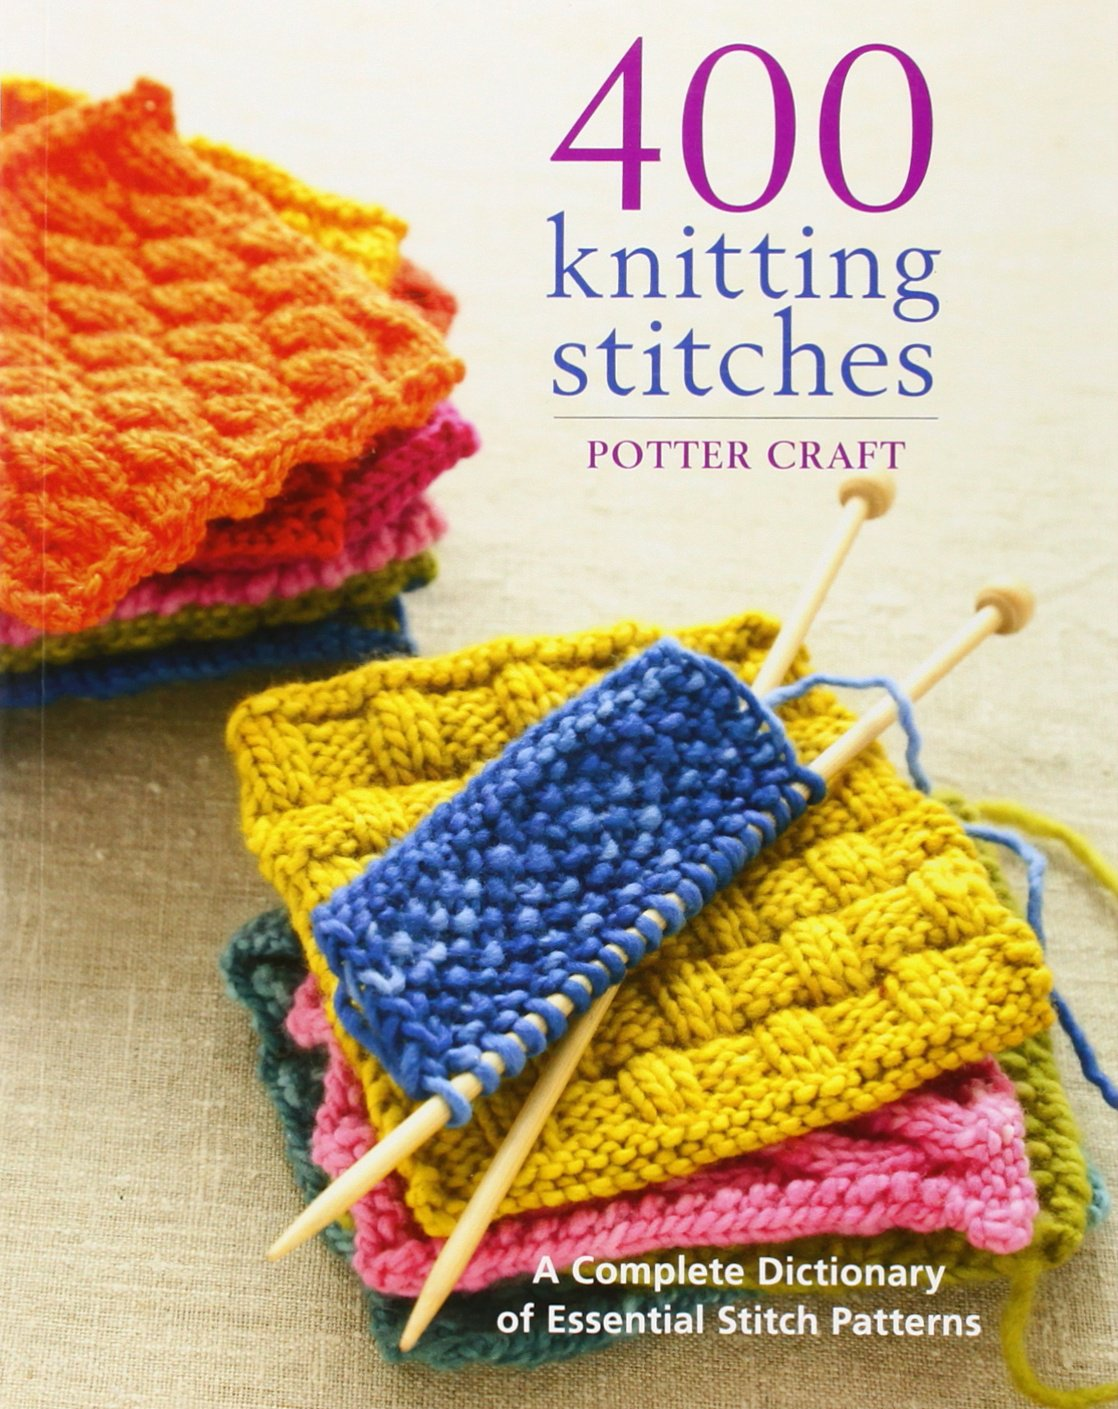 Knitting Rib Stitch For Beginners : 400 Knitting Stitches - LoomaHat.com